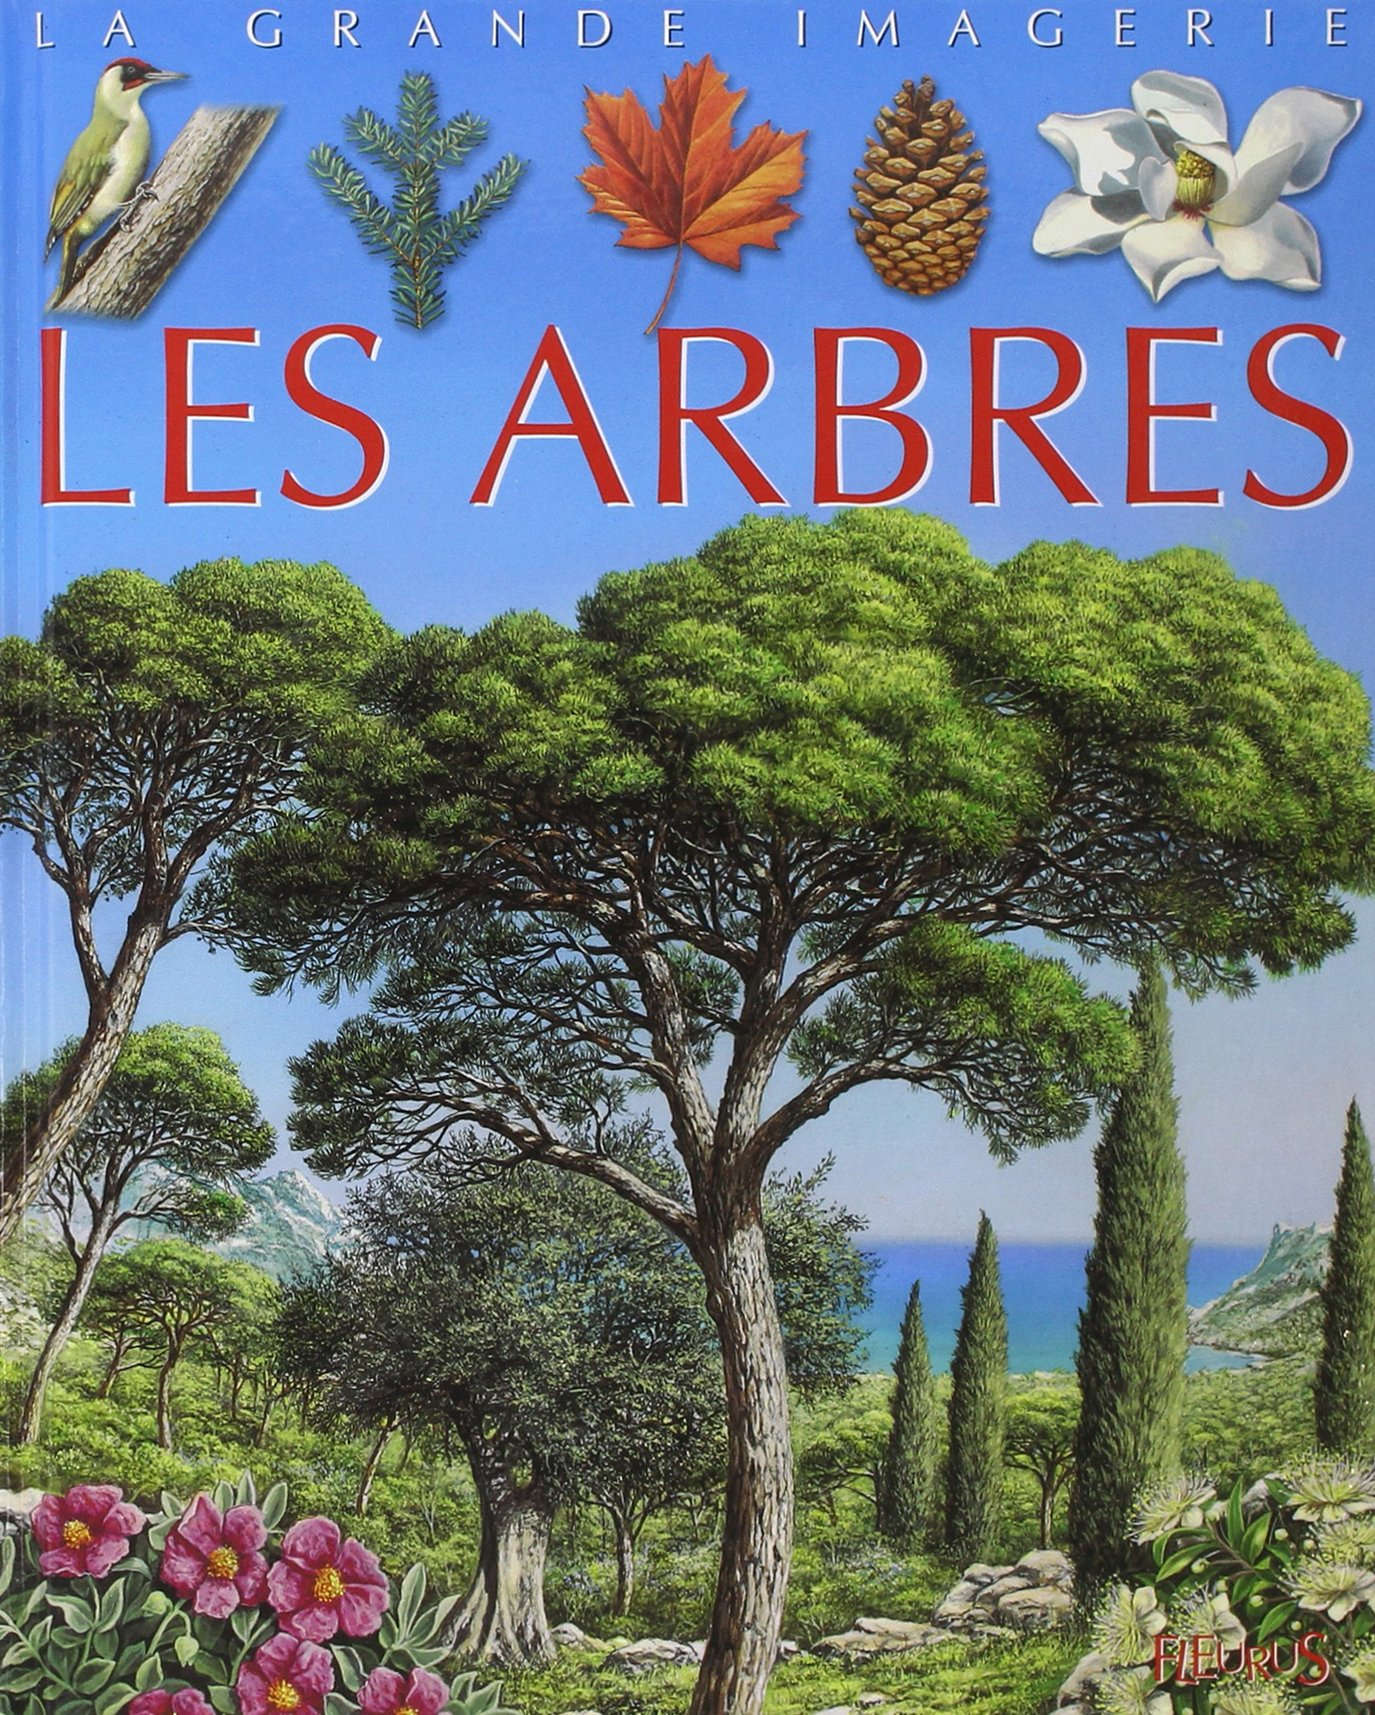 La Grande Imagerie Fleurus: Les Arbres (French Edition) ebook